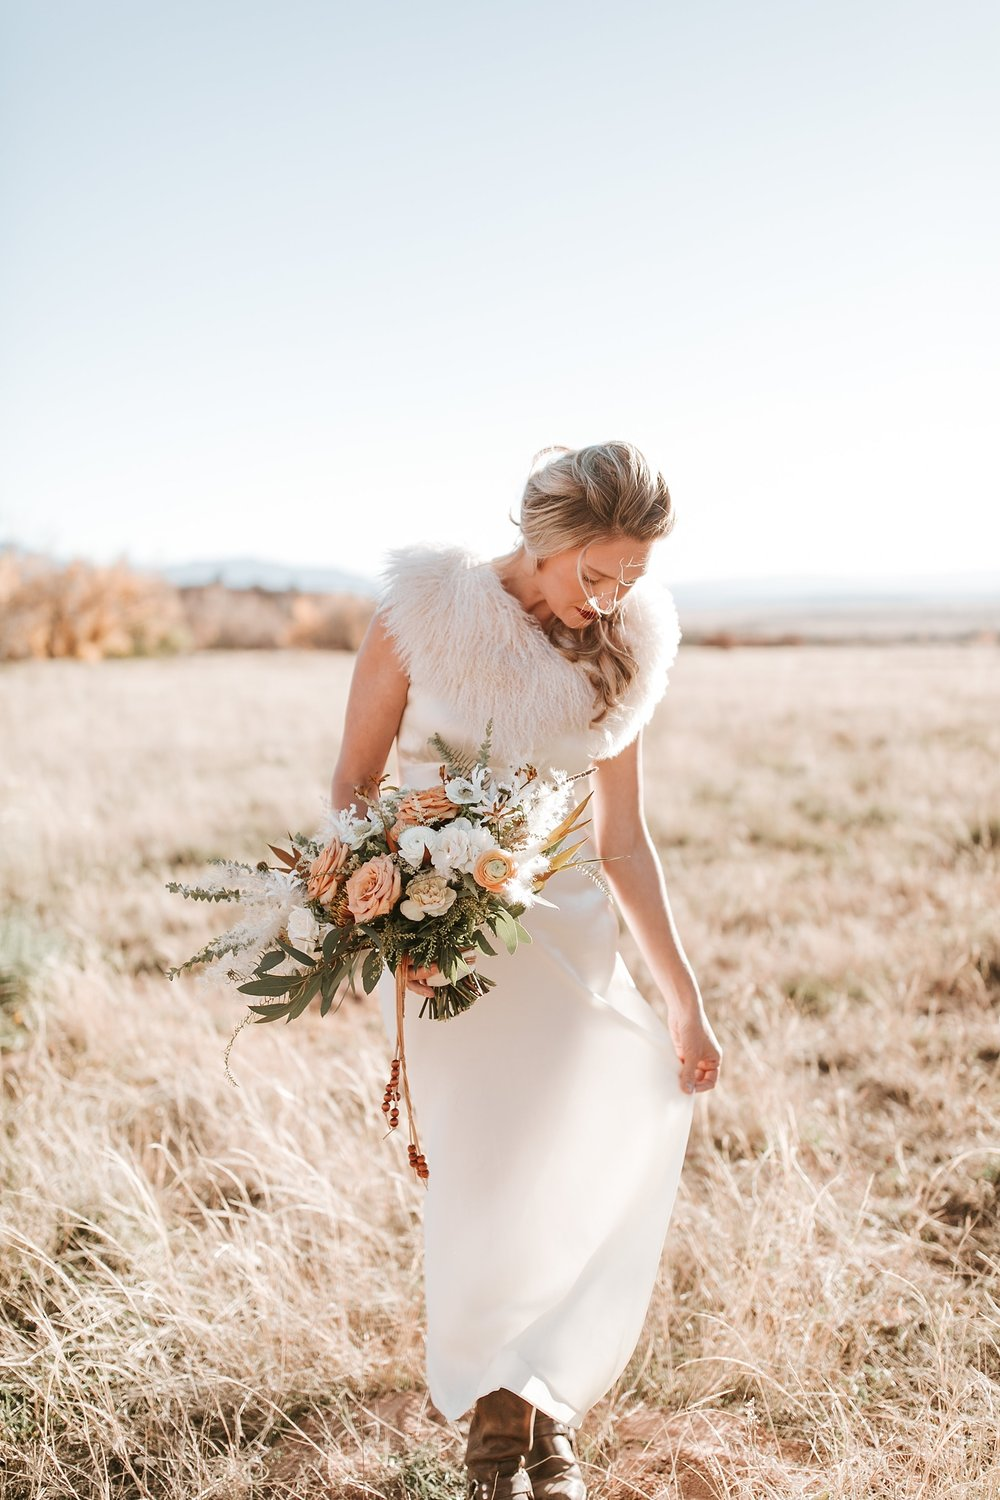 Alicia+lucia+photography+-+albuquerque+wedding+photographer+-+santa+fe+wedding+photography+-+new+mexico+wedding+photographer+-+new+mexico+ghost+ranch+wedding+-+styled+wedding+shoot_0030.jpg